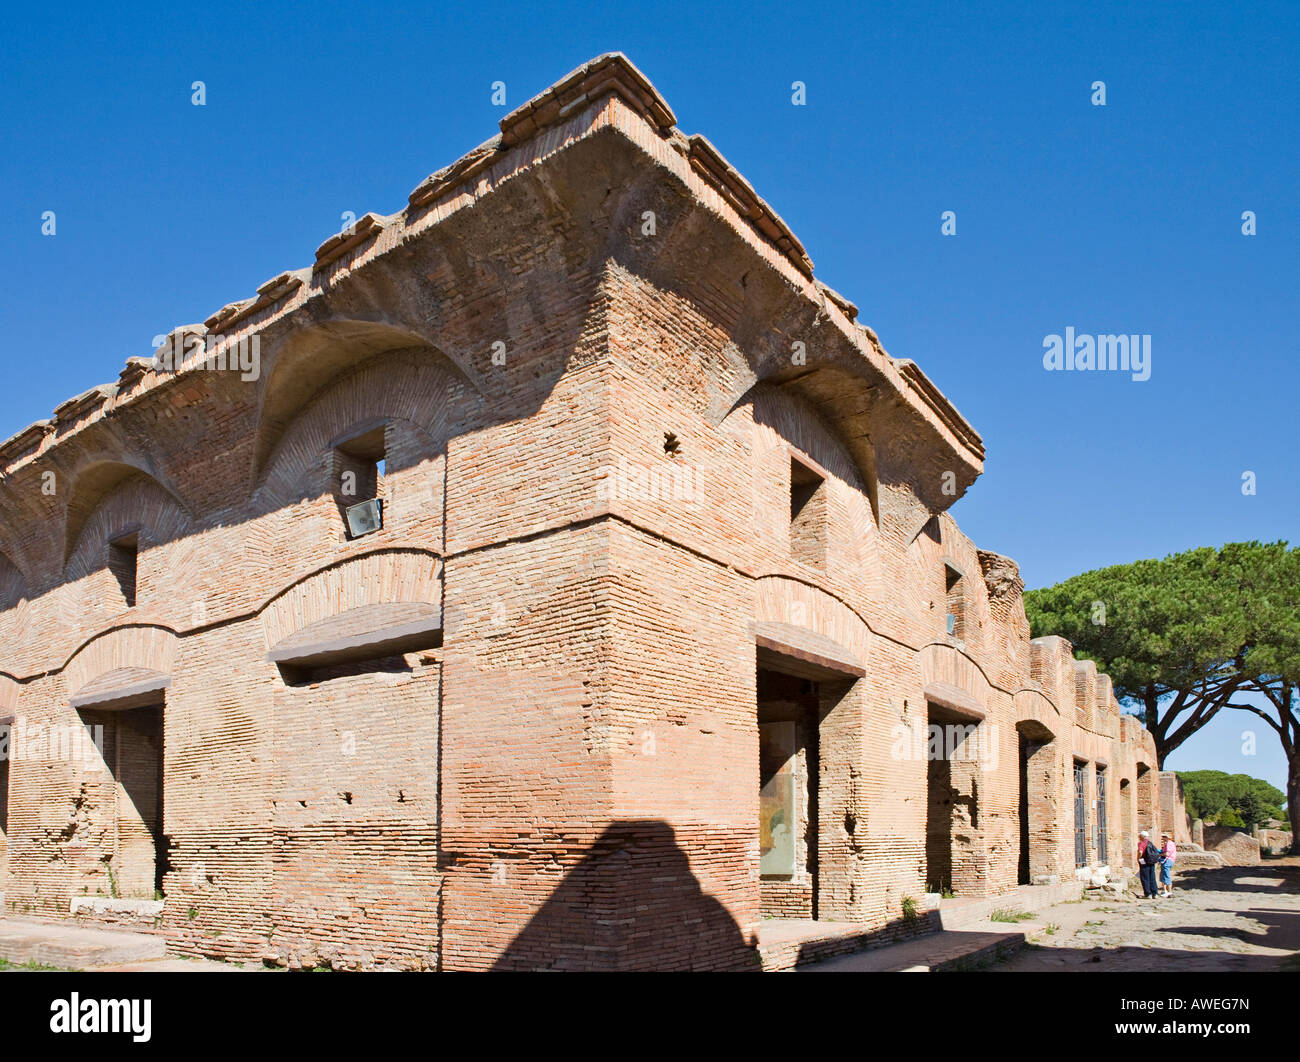 Casa di Diana, multi-story house at Ostia Antica archaeological site, Rome, Italy, Europe - Stock Image